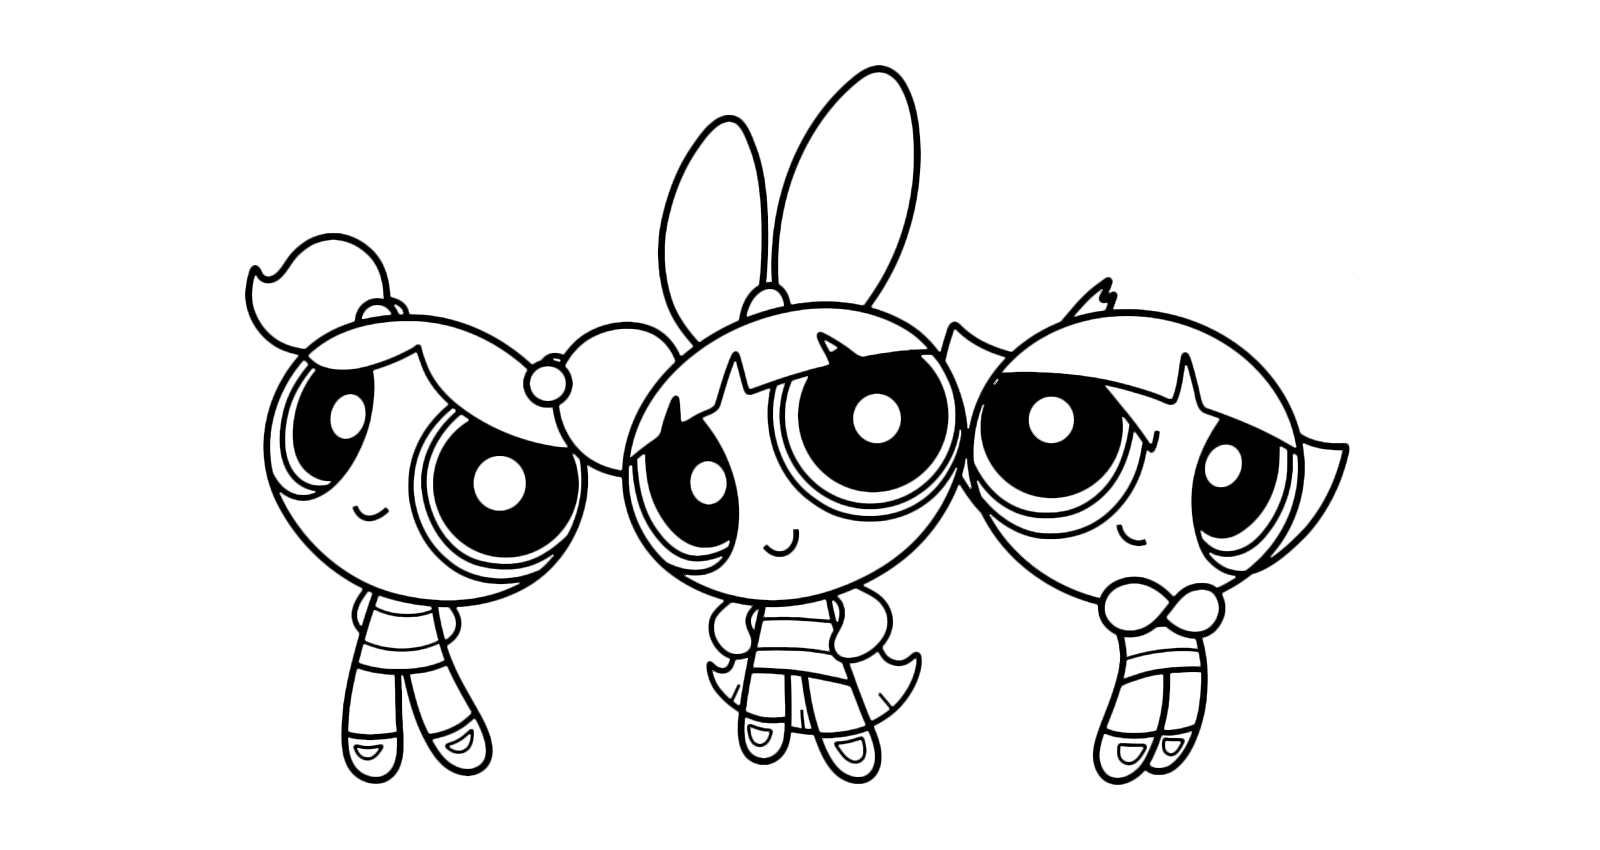 - The Powerpuff Girls - The Powerpuff Girls Is Posing For A Picture